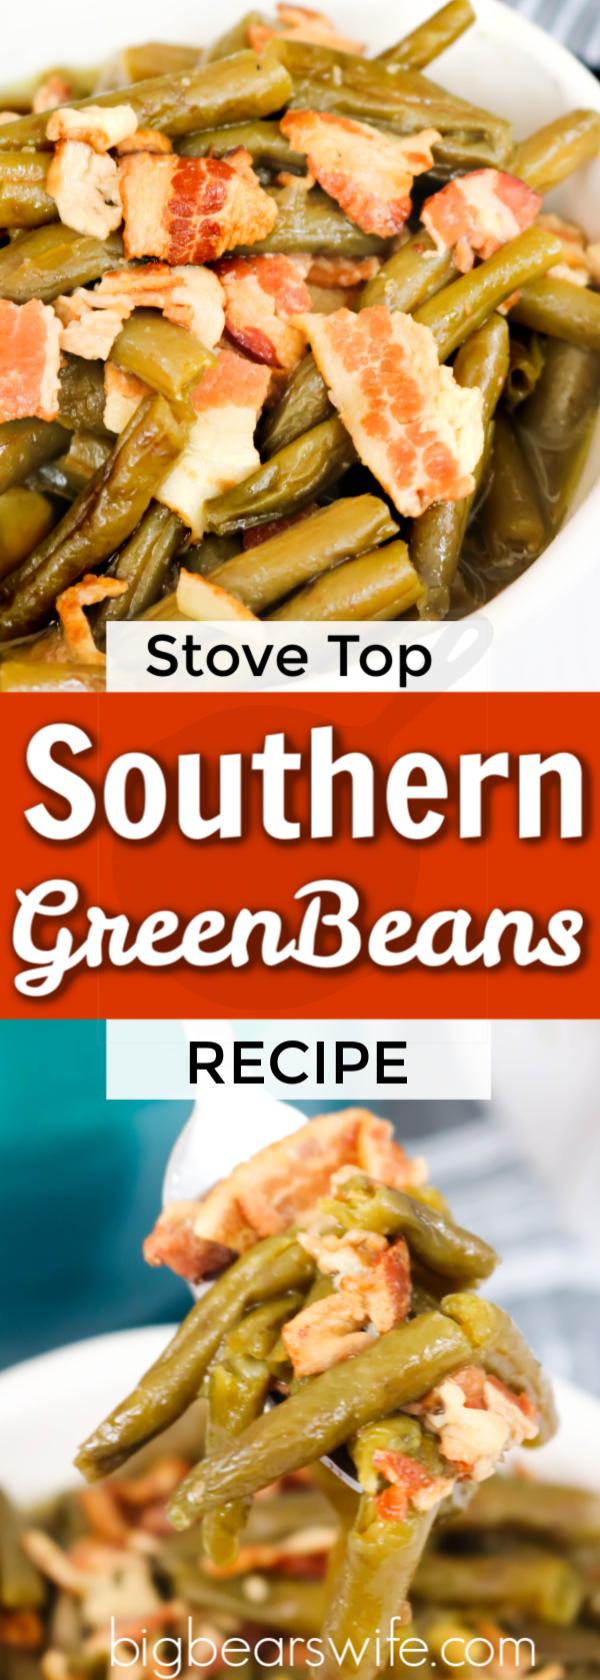 Stove Top Southern Green Beans - Stove Top Southern Green Beans are amazing and super easy to make! They're simmered all day long to create the most flavorful green beans ever!